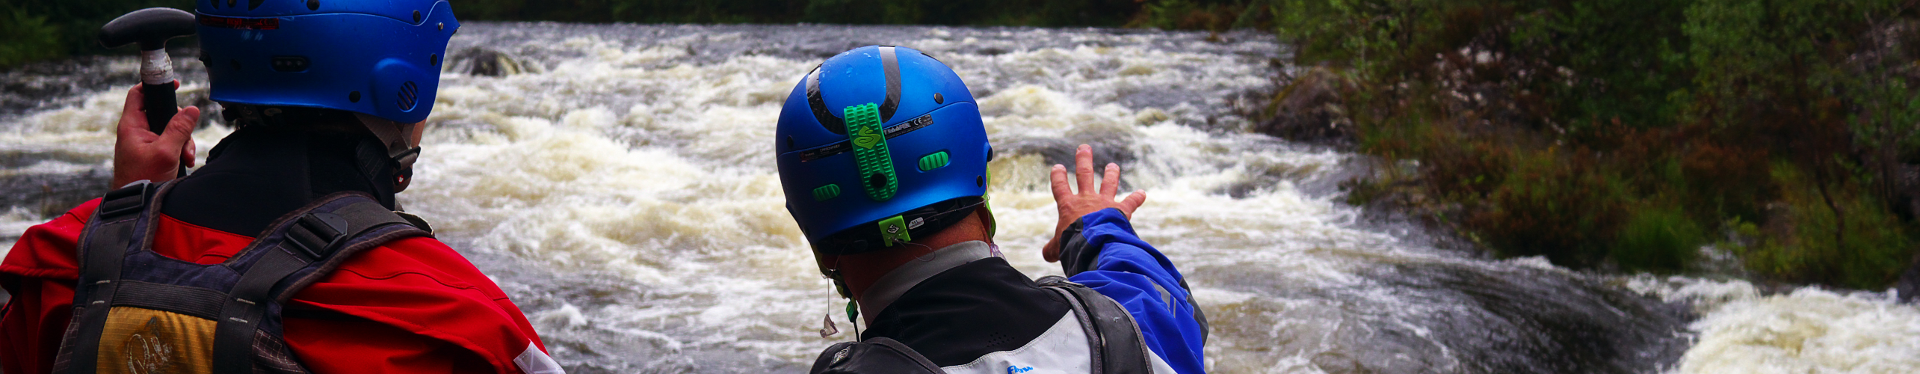 White Water Leader Assessment with Refresher OC1 and White Water Kayak (formerly 4 Star) @ Grandtully | Grandtully | Scotland | United Kingdom